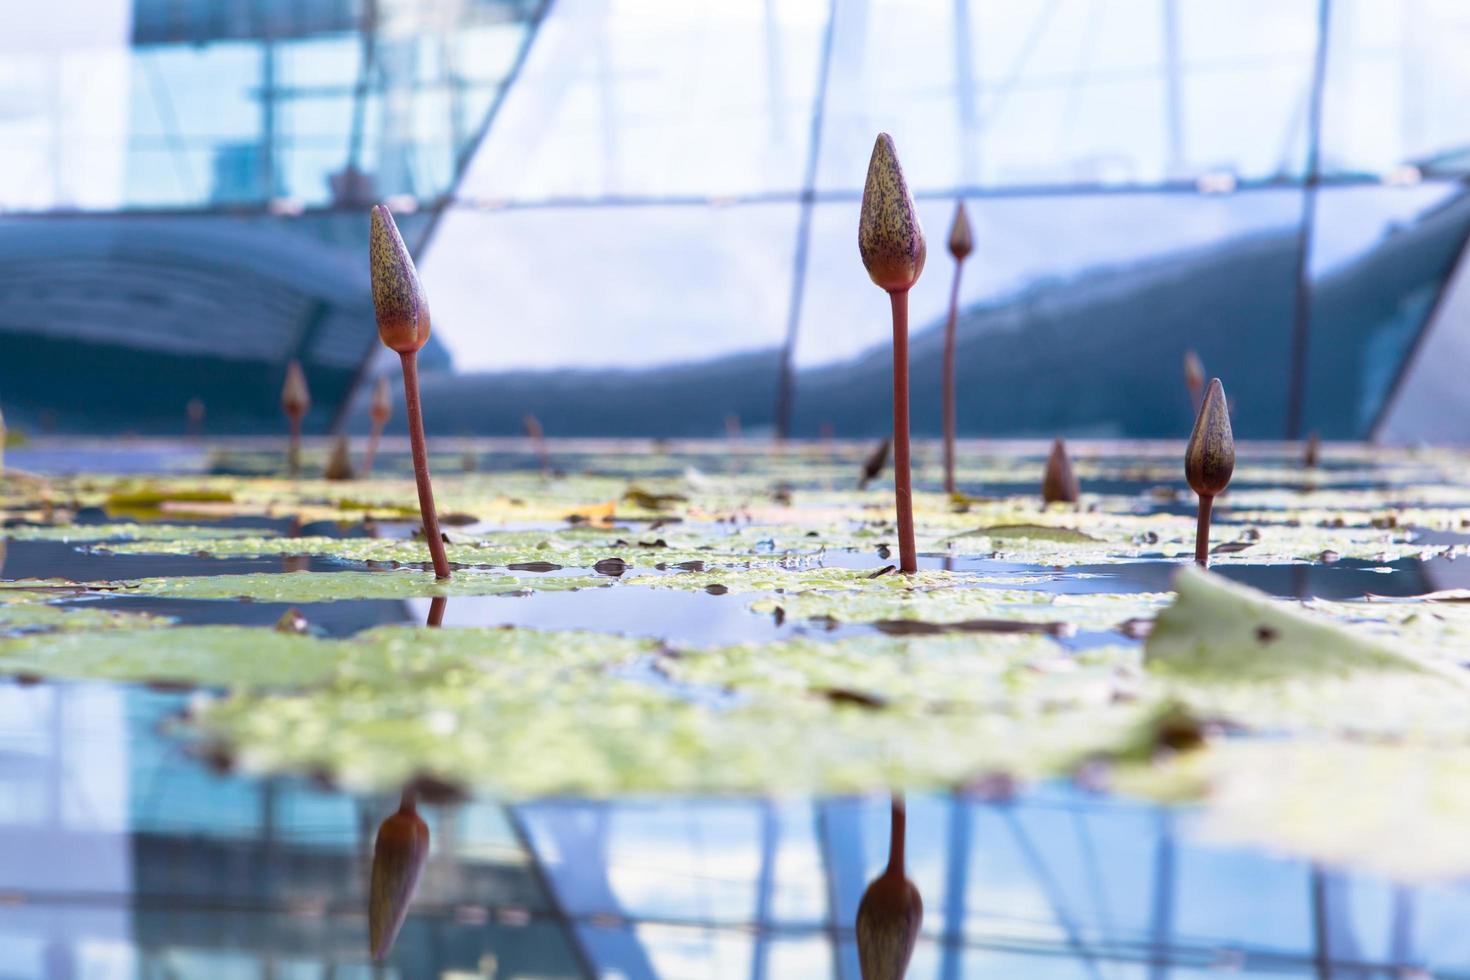 Singapore Botanical Gardens, Singapore, 2020 - Close-up of waterlilies in a greenhouse photo